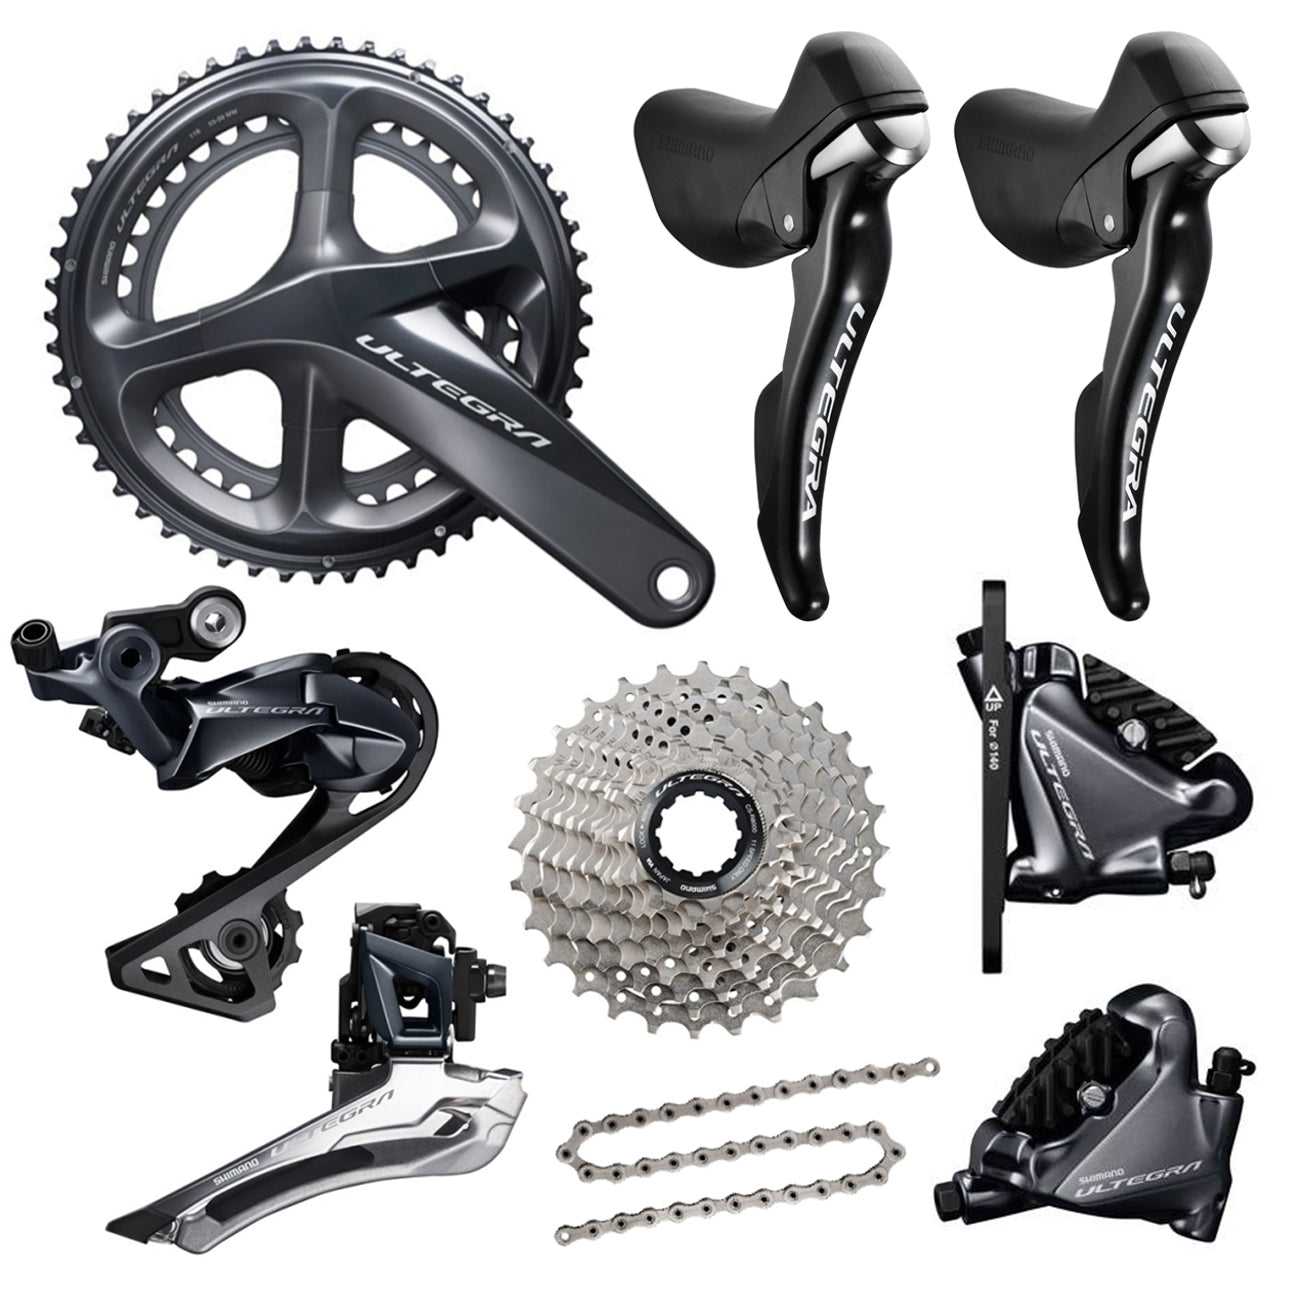 Shimano Ultegra Disc R8020 Groupset  - TUNE cycles